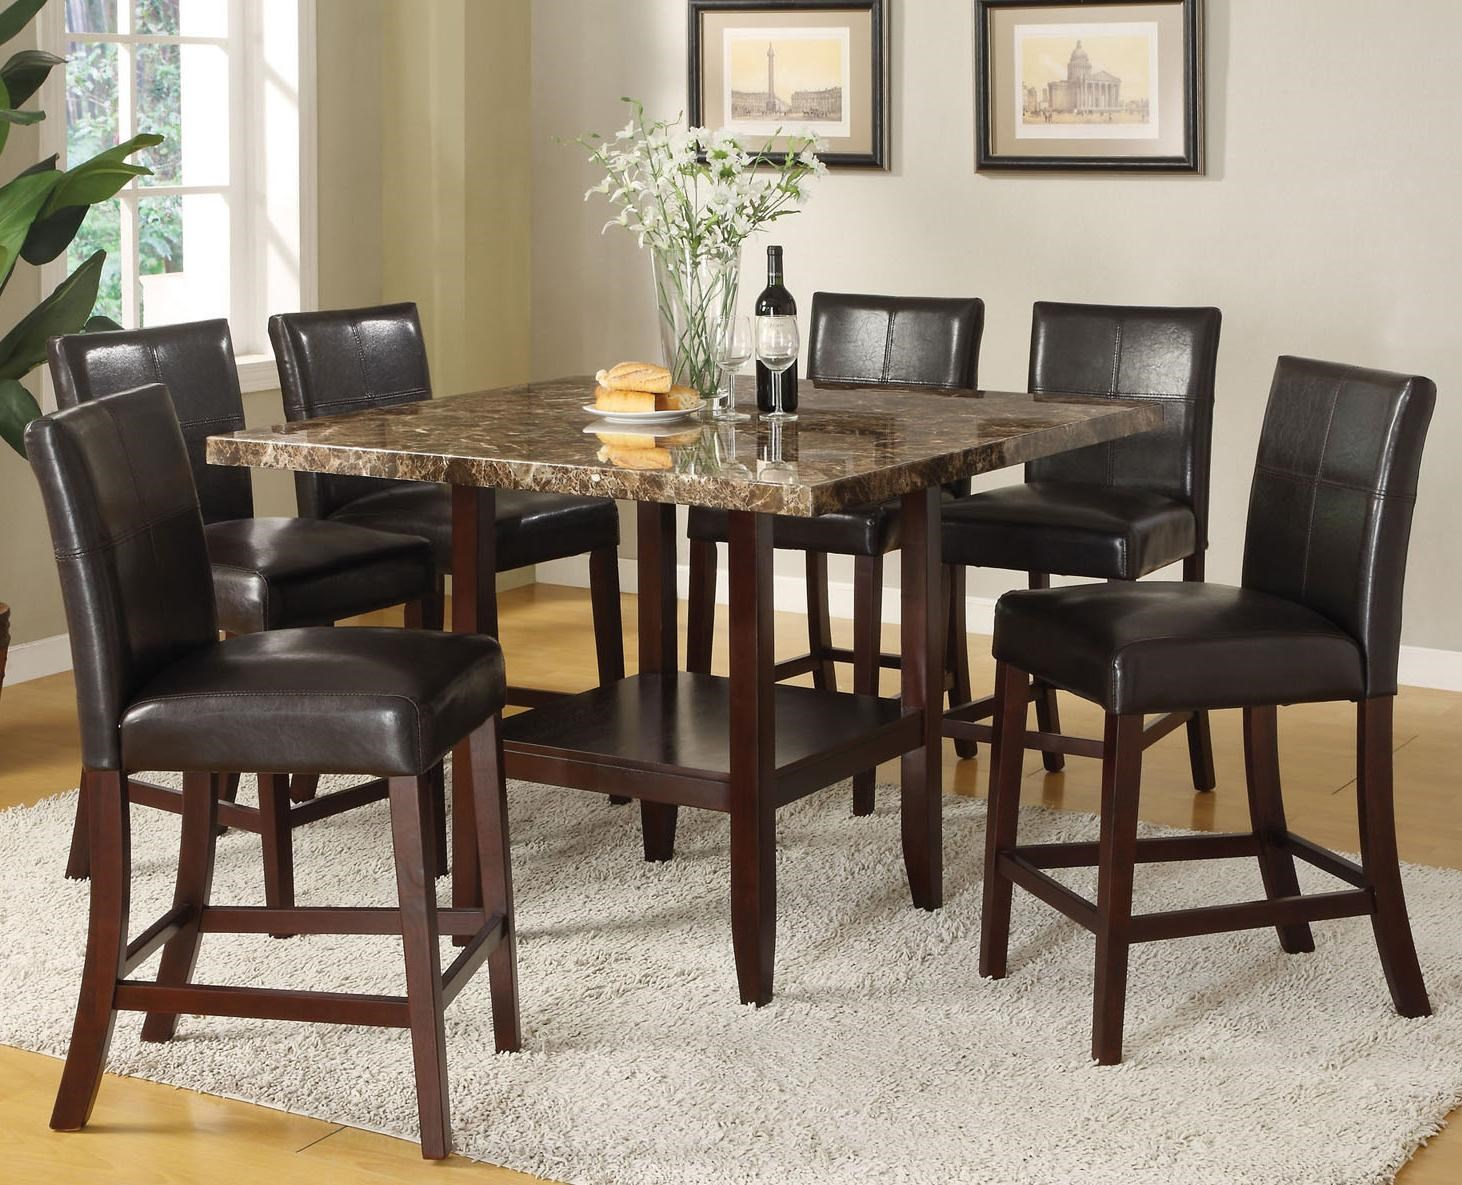 Acme Furniture Idris 7 Piece Counter Height Dining Set With Square Pedestal  Table